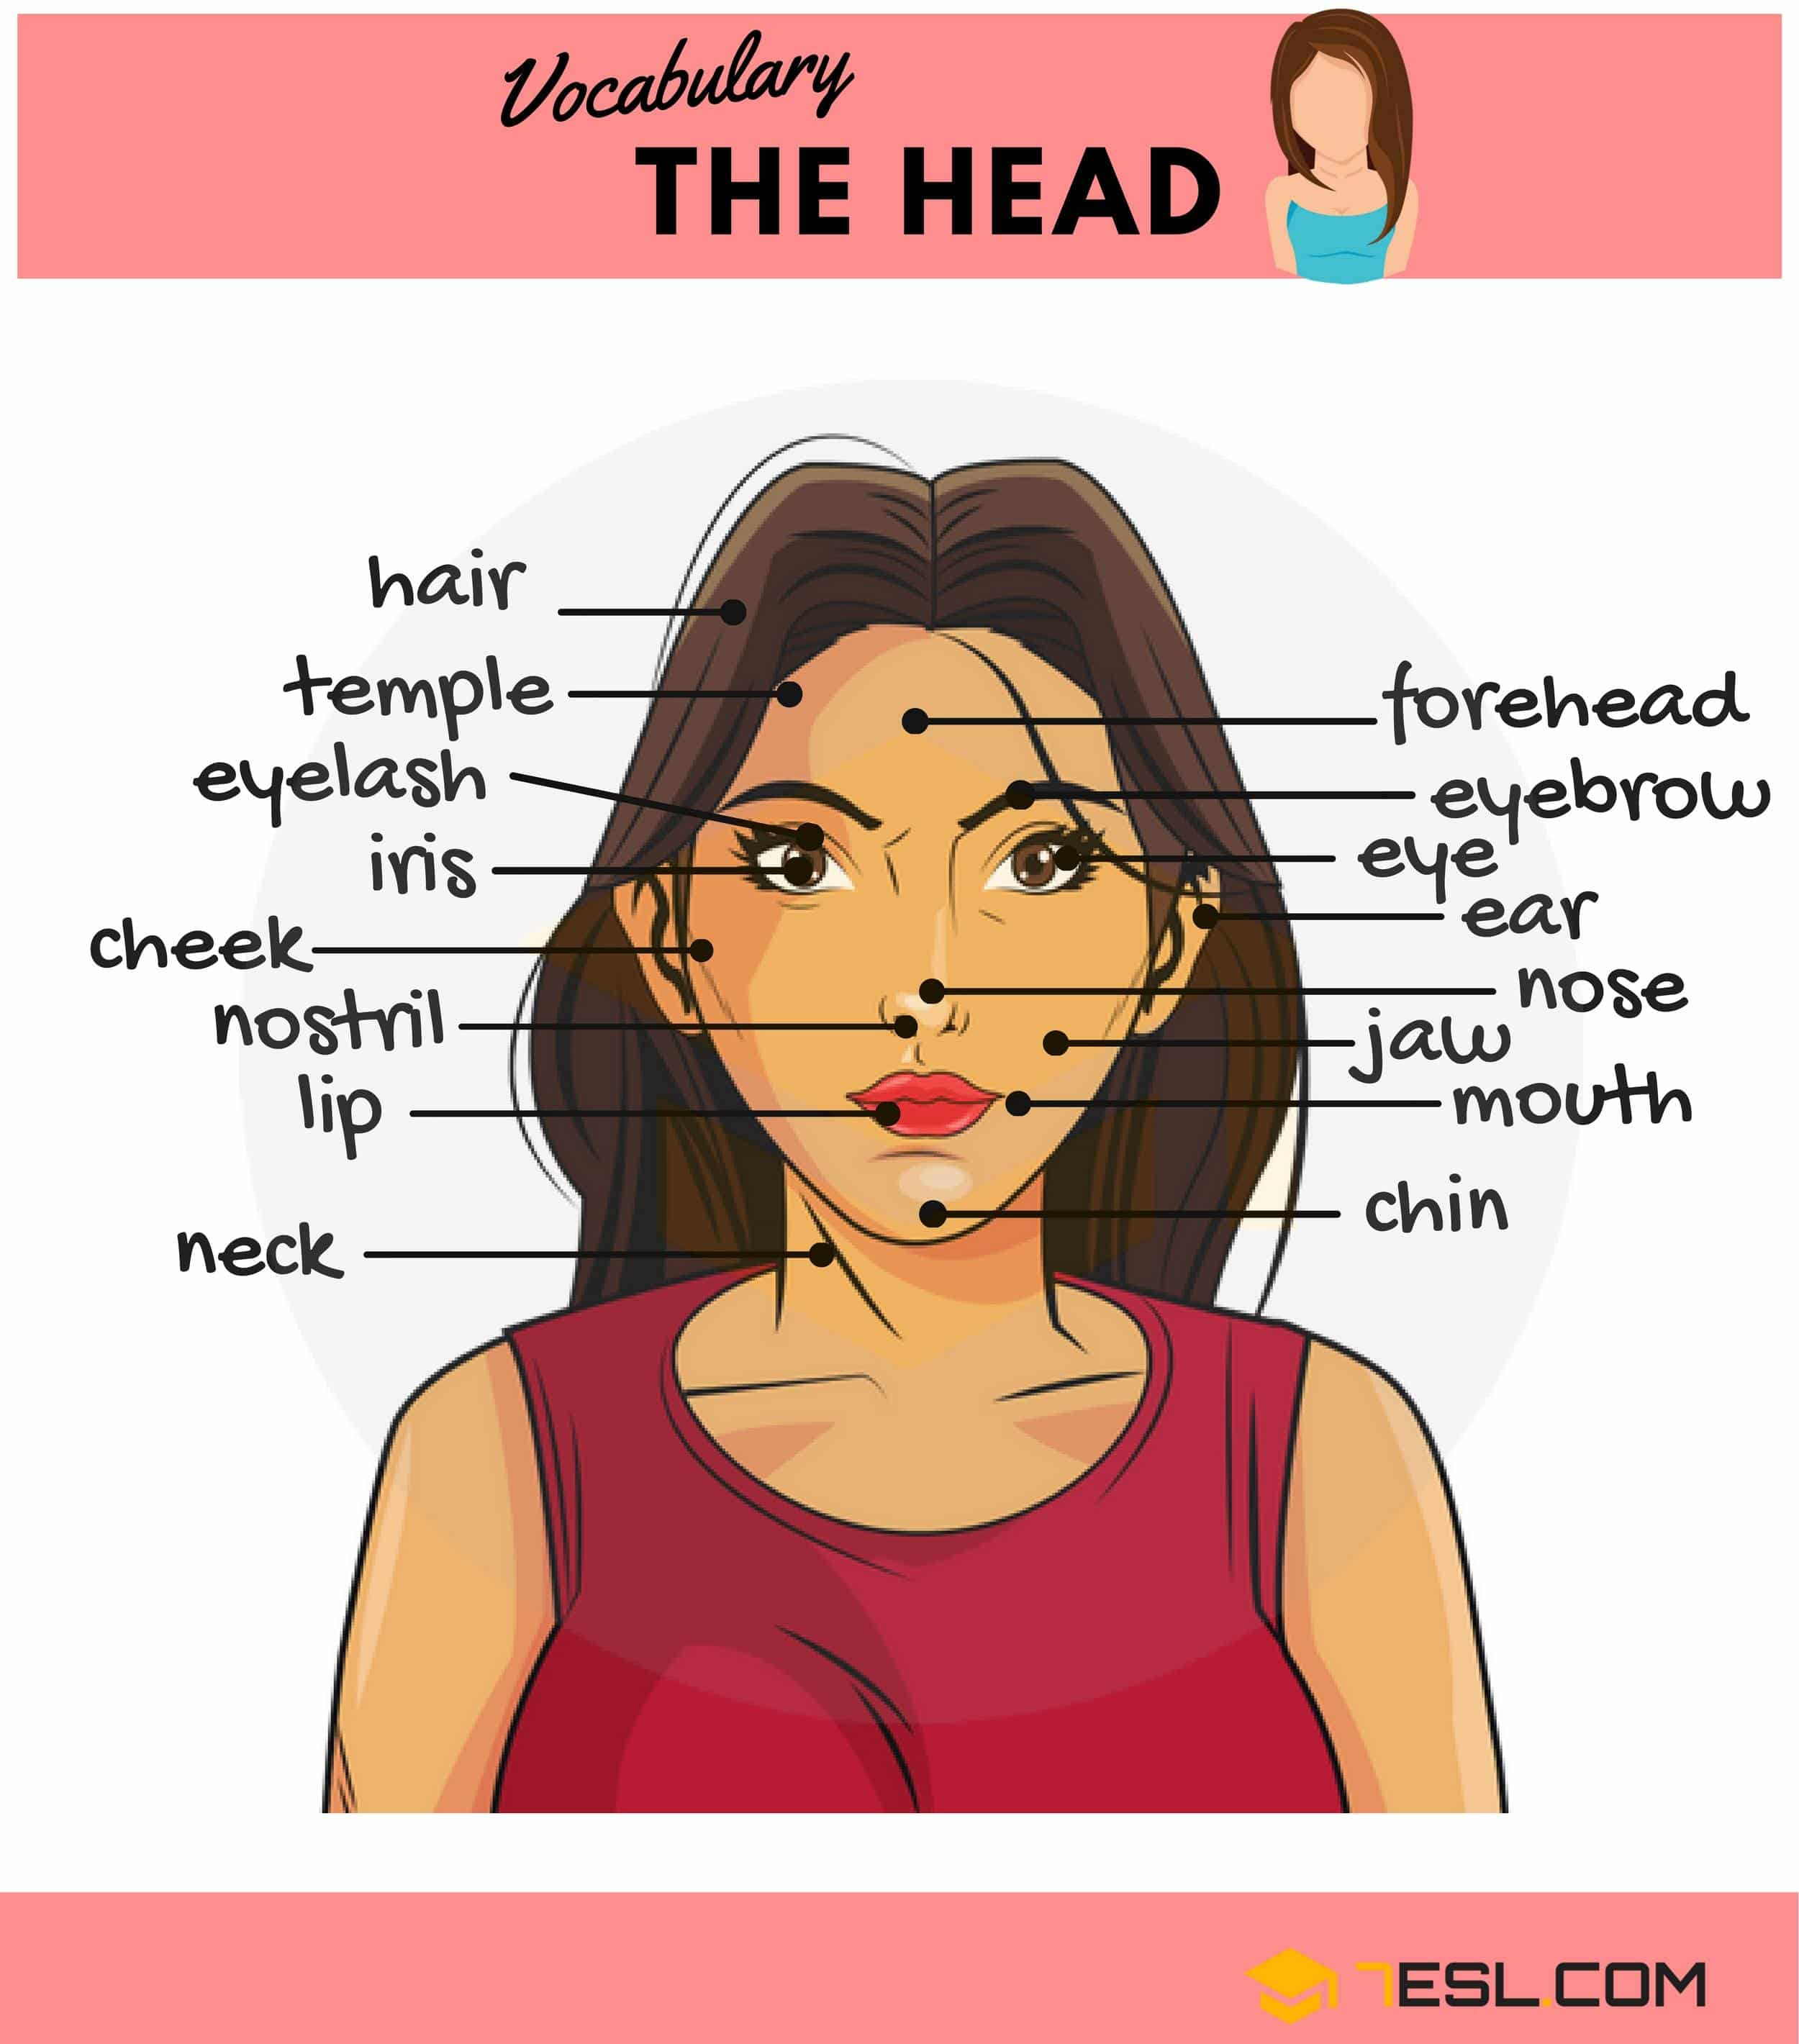 Parts of the Head | Image